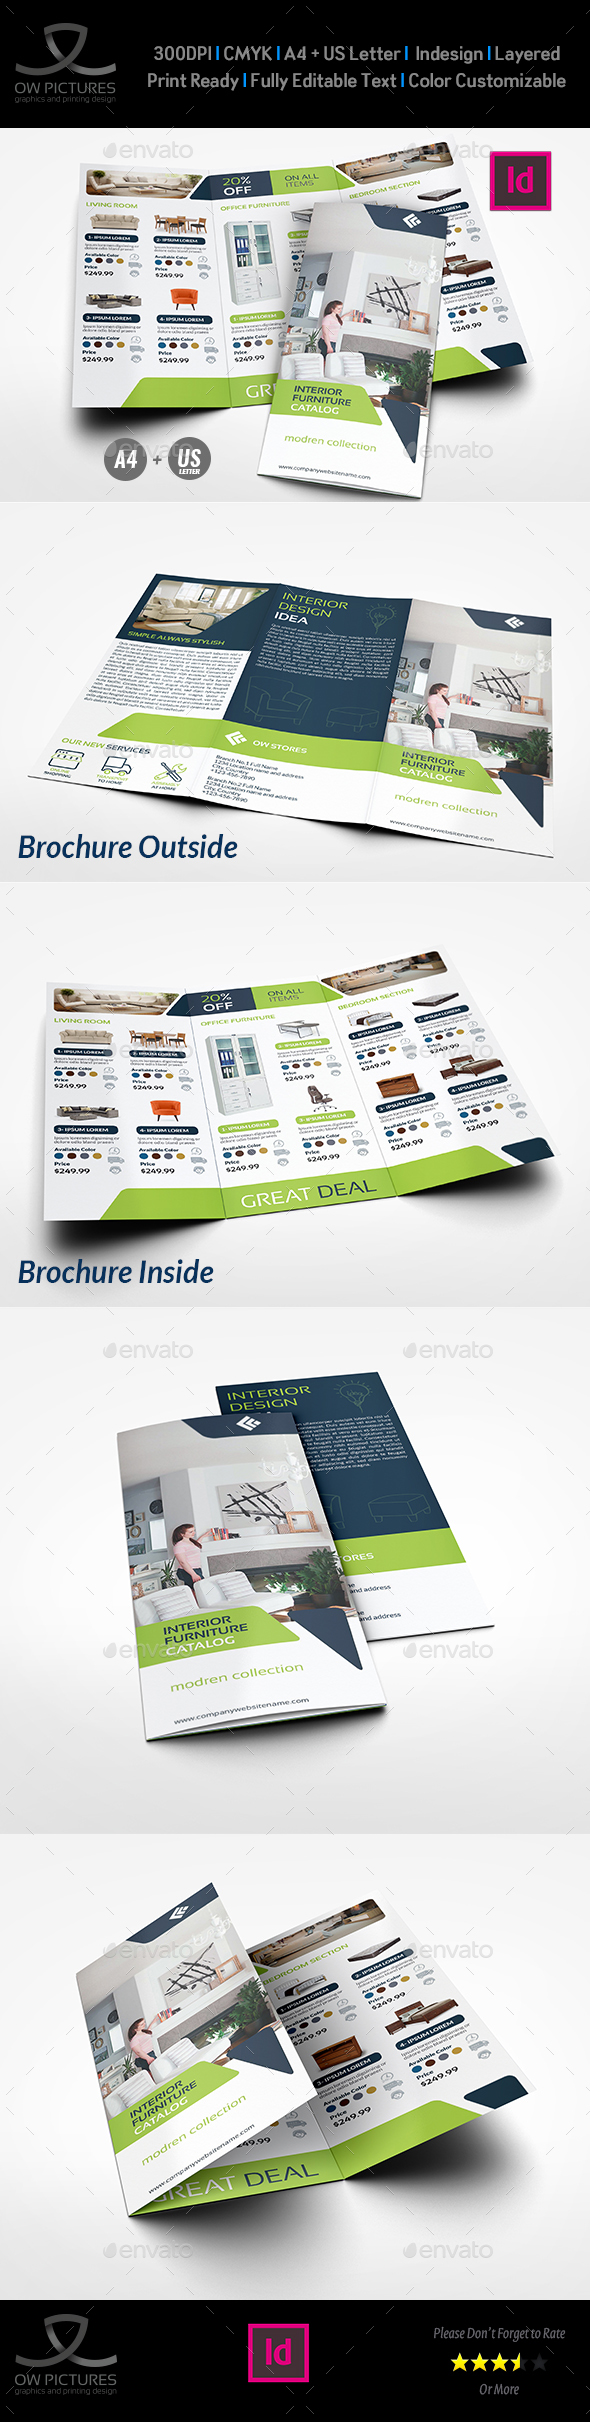 Furniture Products Catalog Tri-Fold Brochure Template Vol.2 - Catalogs Brochures